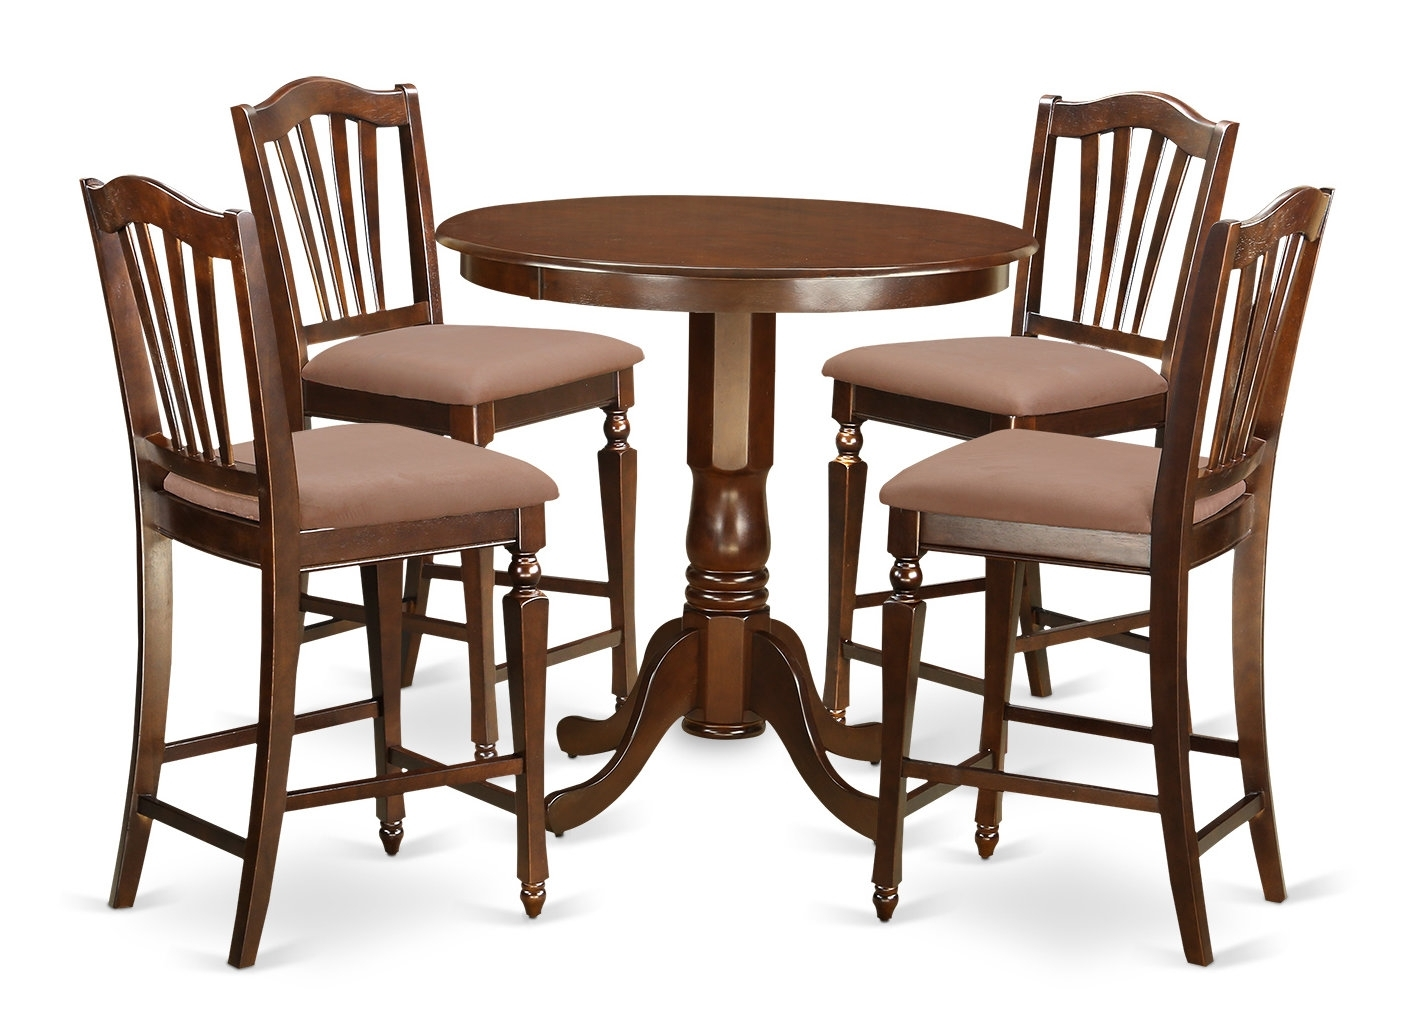 East West Jackson 5 Piece Counter Height Pub Table Set | Wayfair Within Recent Jaxon 6 Piece Rectangle Dining Sets With Bench & Wood Chairs (Photo 17 of 20)